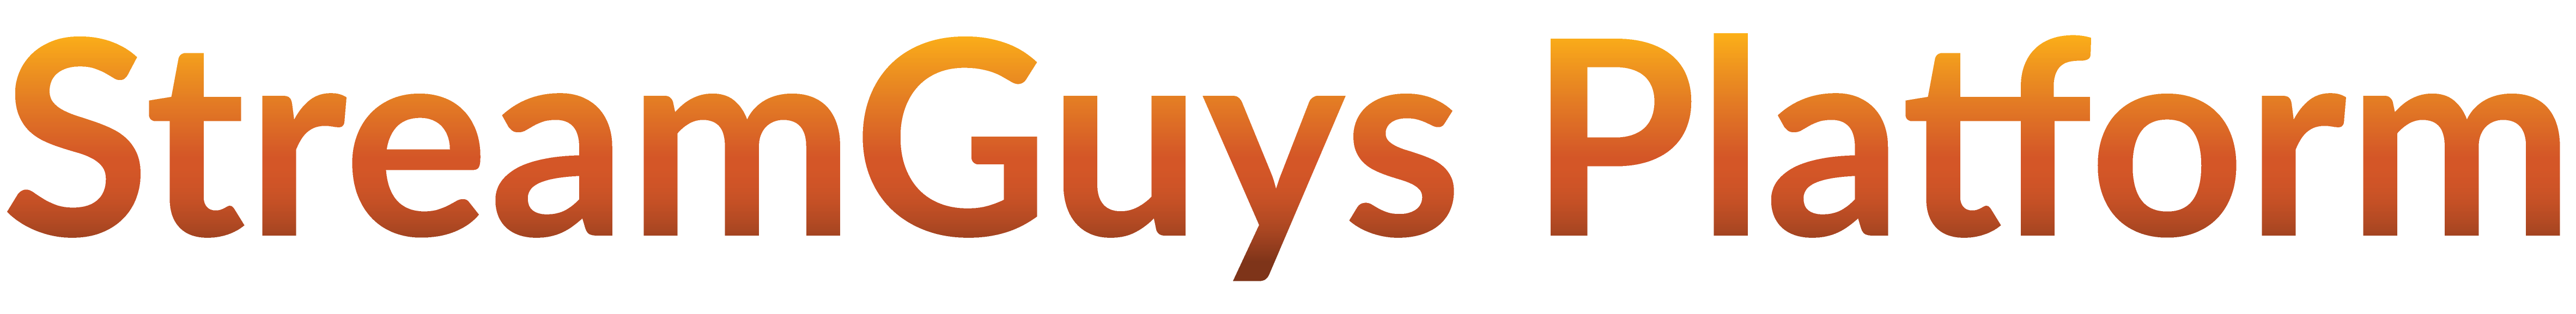 StreamGuys Platform logo